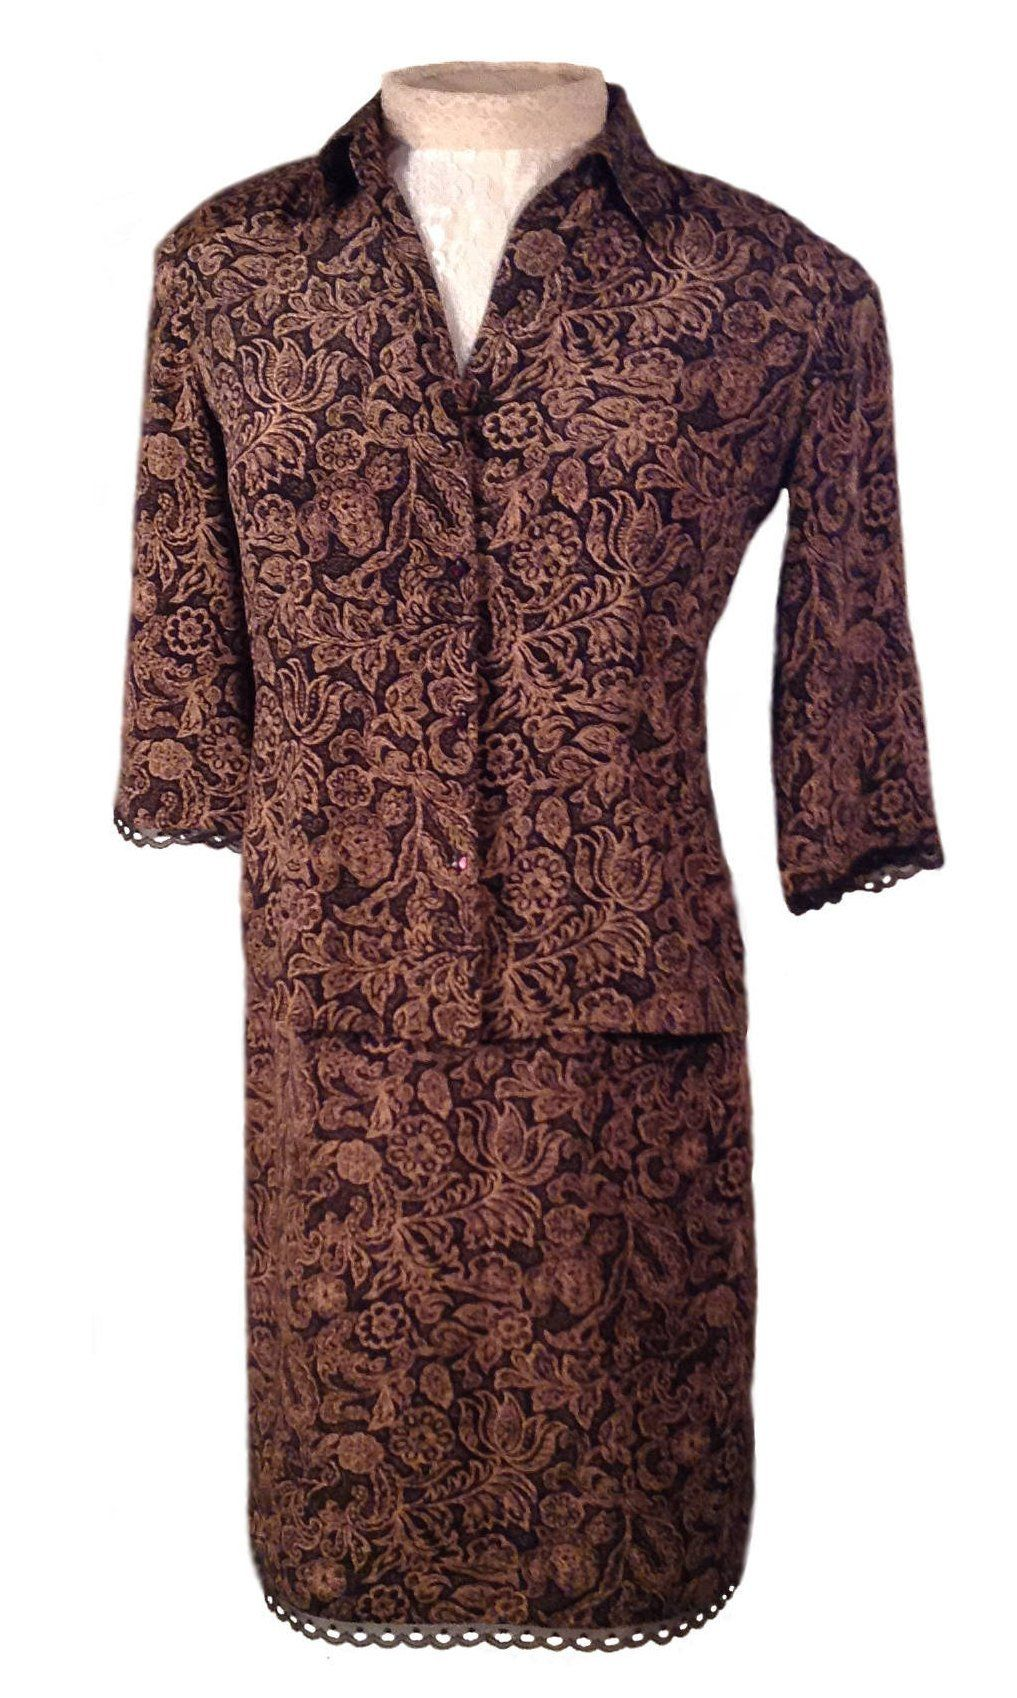 413ee3eeea72af Emma James   Liz Claiborne Women s Skirt and Blouse Set - 100% Silk Size 10  by CreativeDebs on Etsy